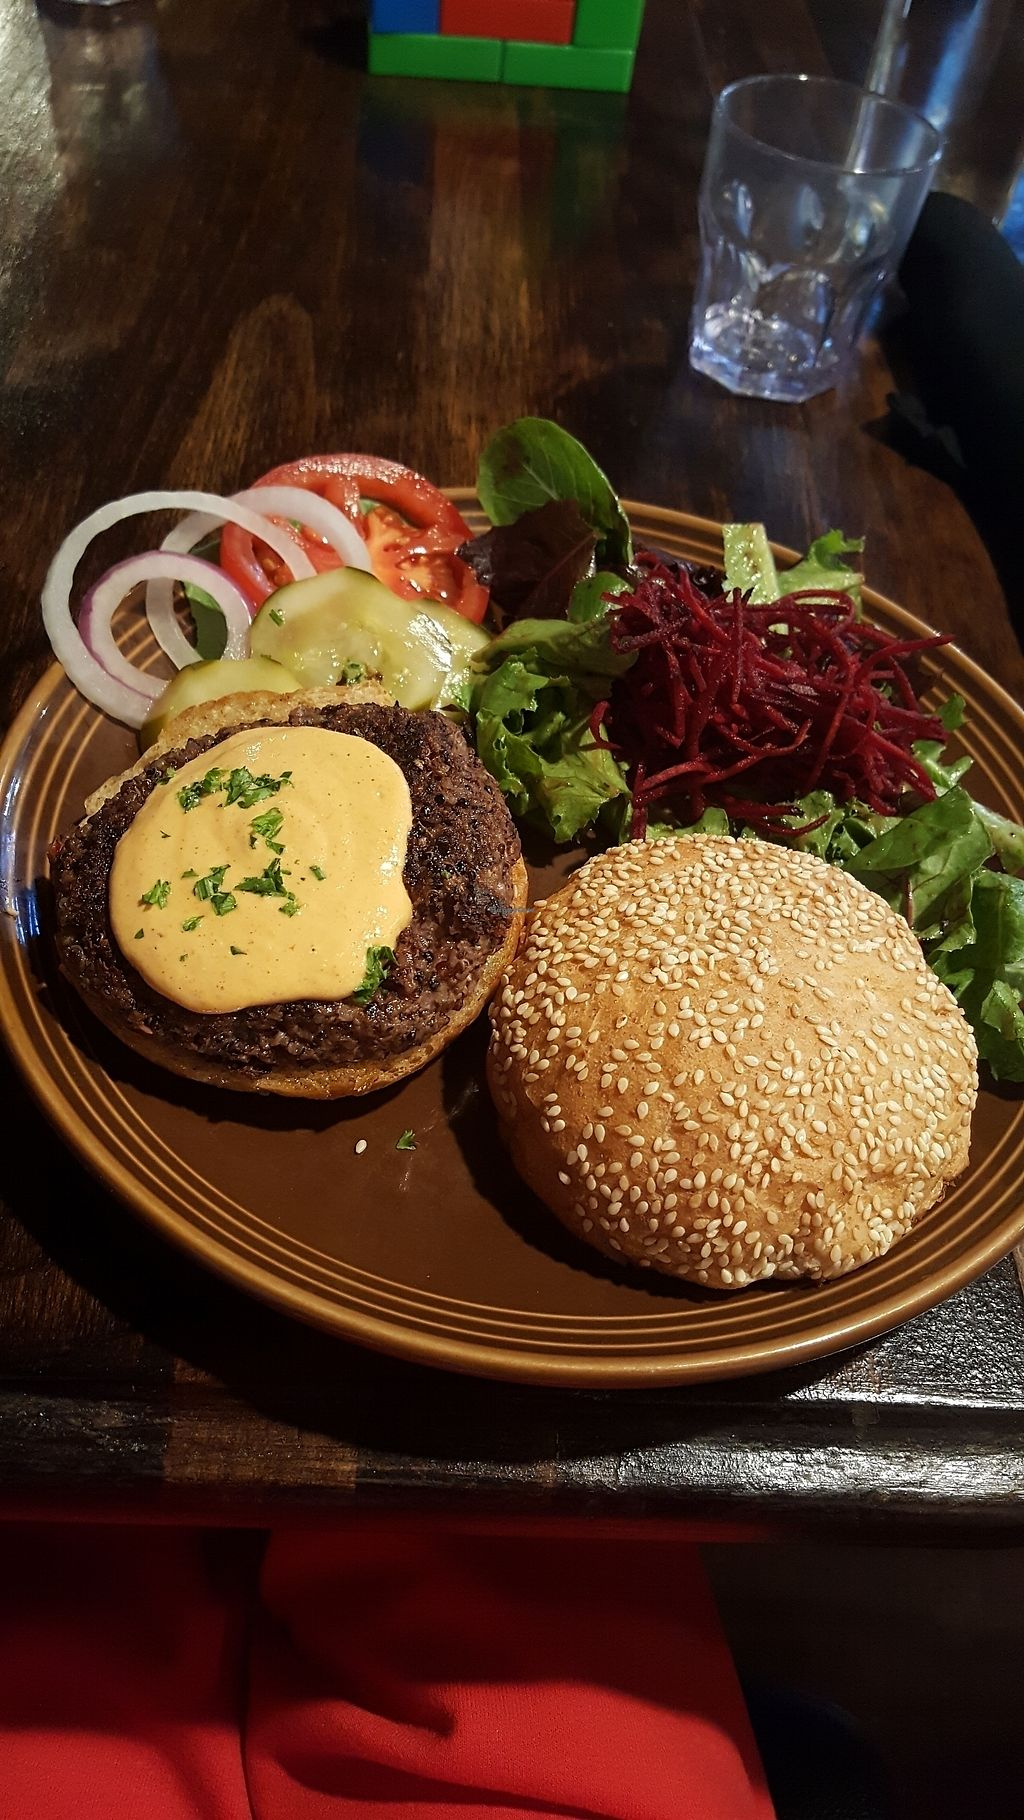 """Photo of Cafe Gratitude  by <a href=""""/members/profile/veganbrownie"""">veganbrownie</a> <br/>the bean burger with spicy cashew Chipotle cheese (this was awesome!l <br/> July 30, 2017  - <a href='/contact/abuse/image/28319/286524'>Report</a>"""